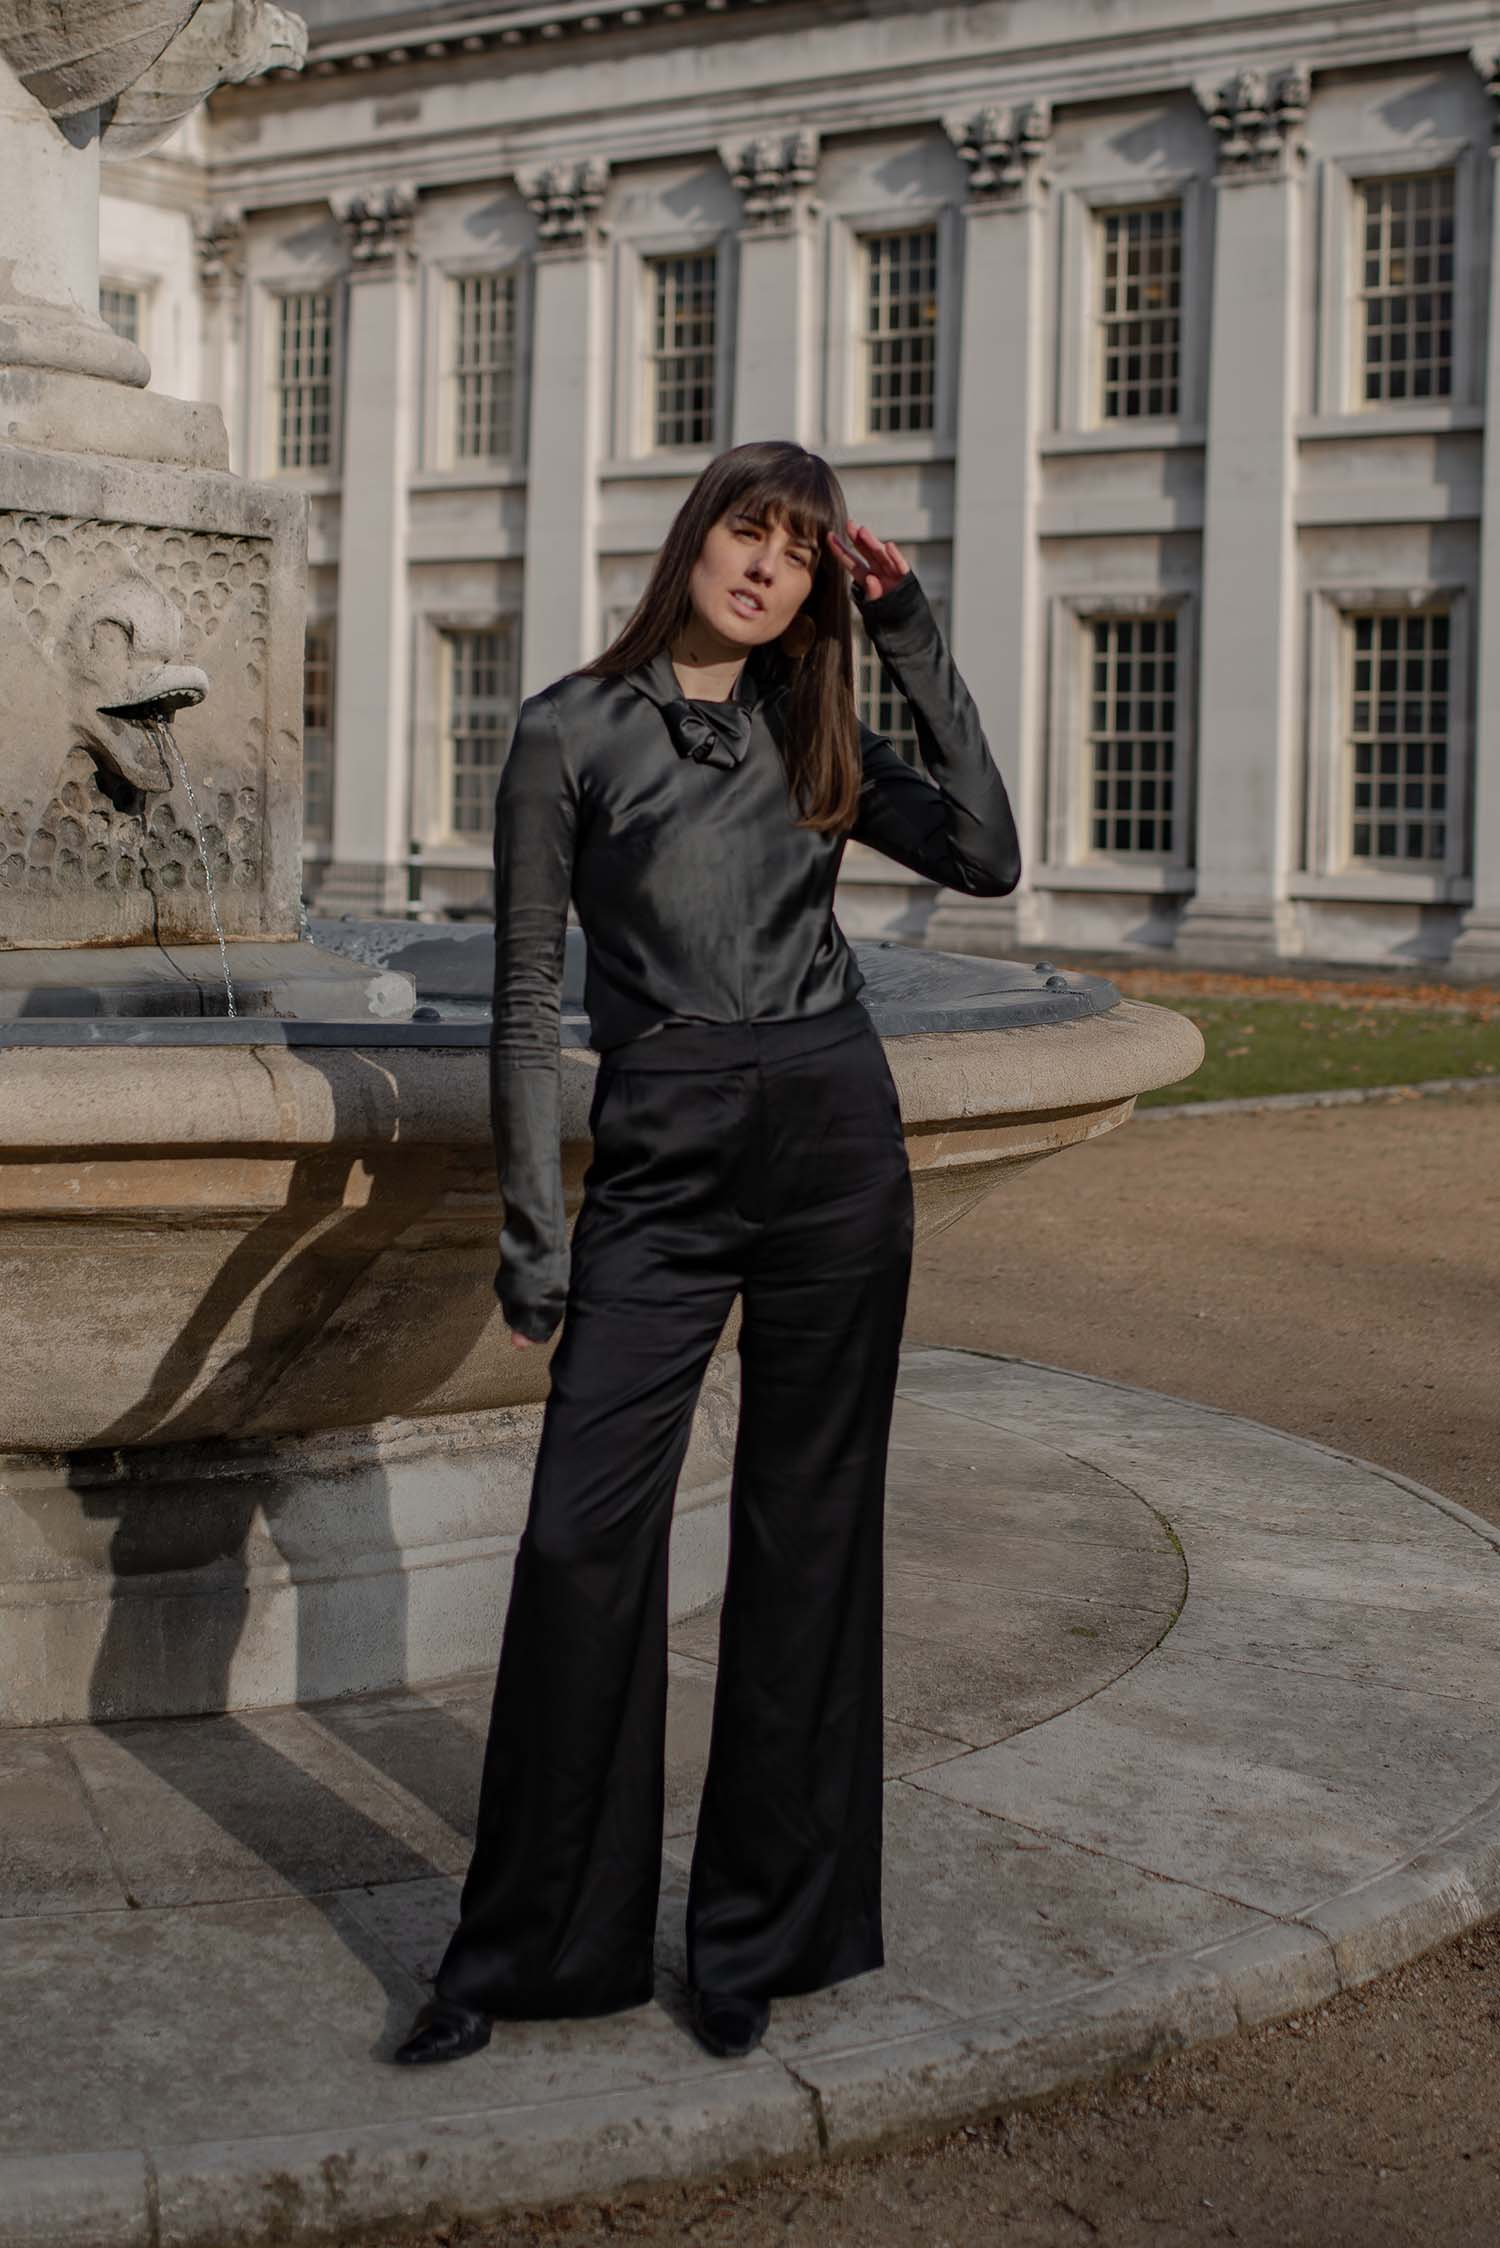 Hero High-Waisted Trousers - Black by Laura Ironside on curated-crowd.com